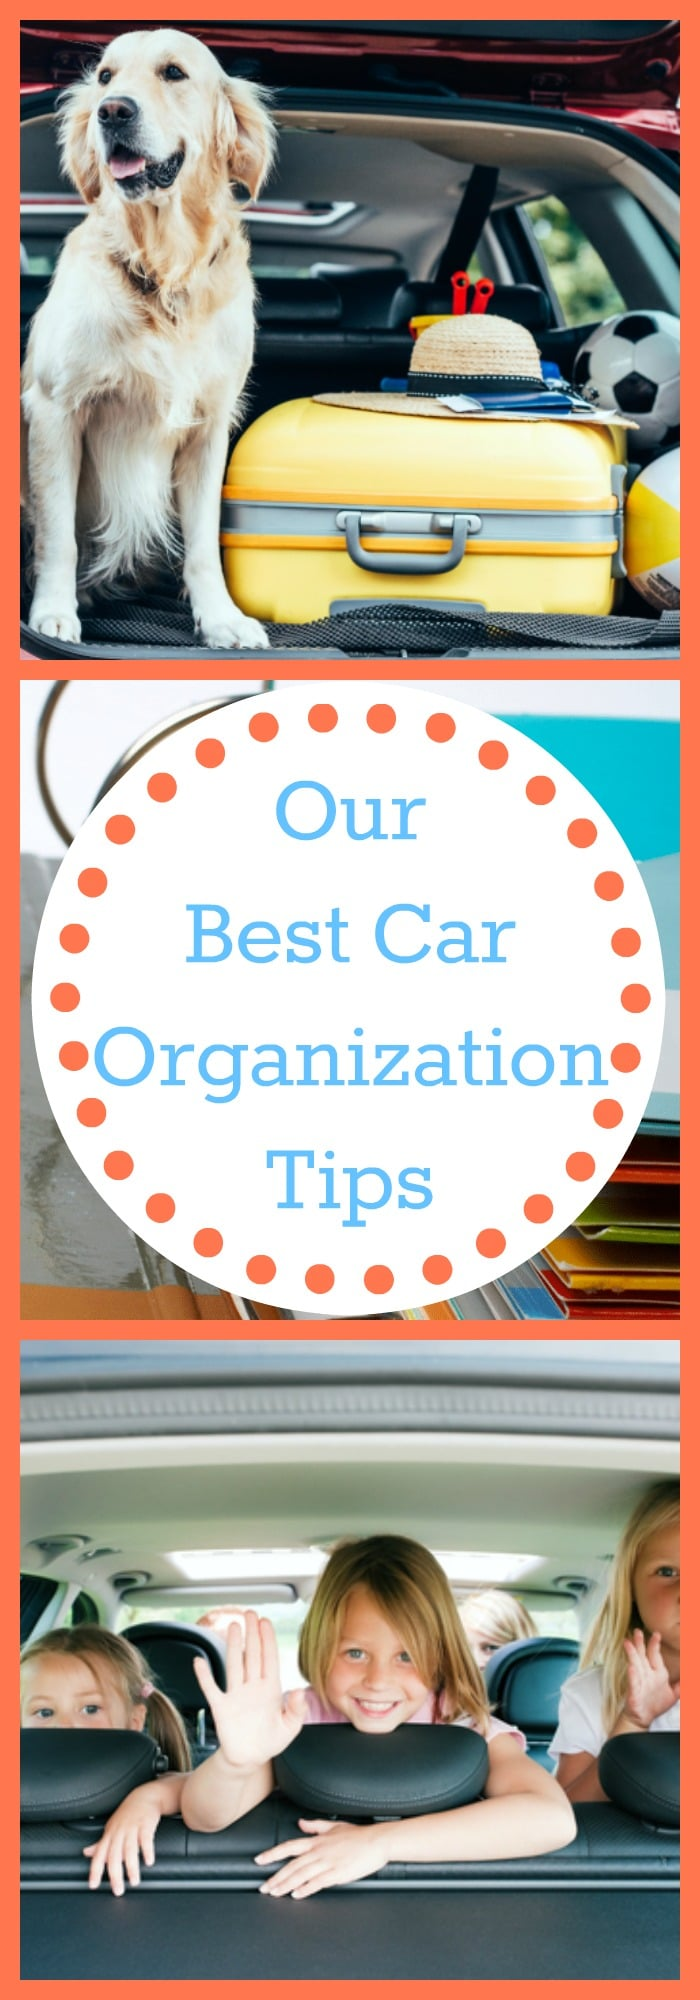 Our Best Car Organization Tips